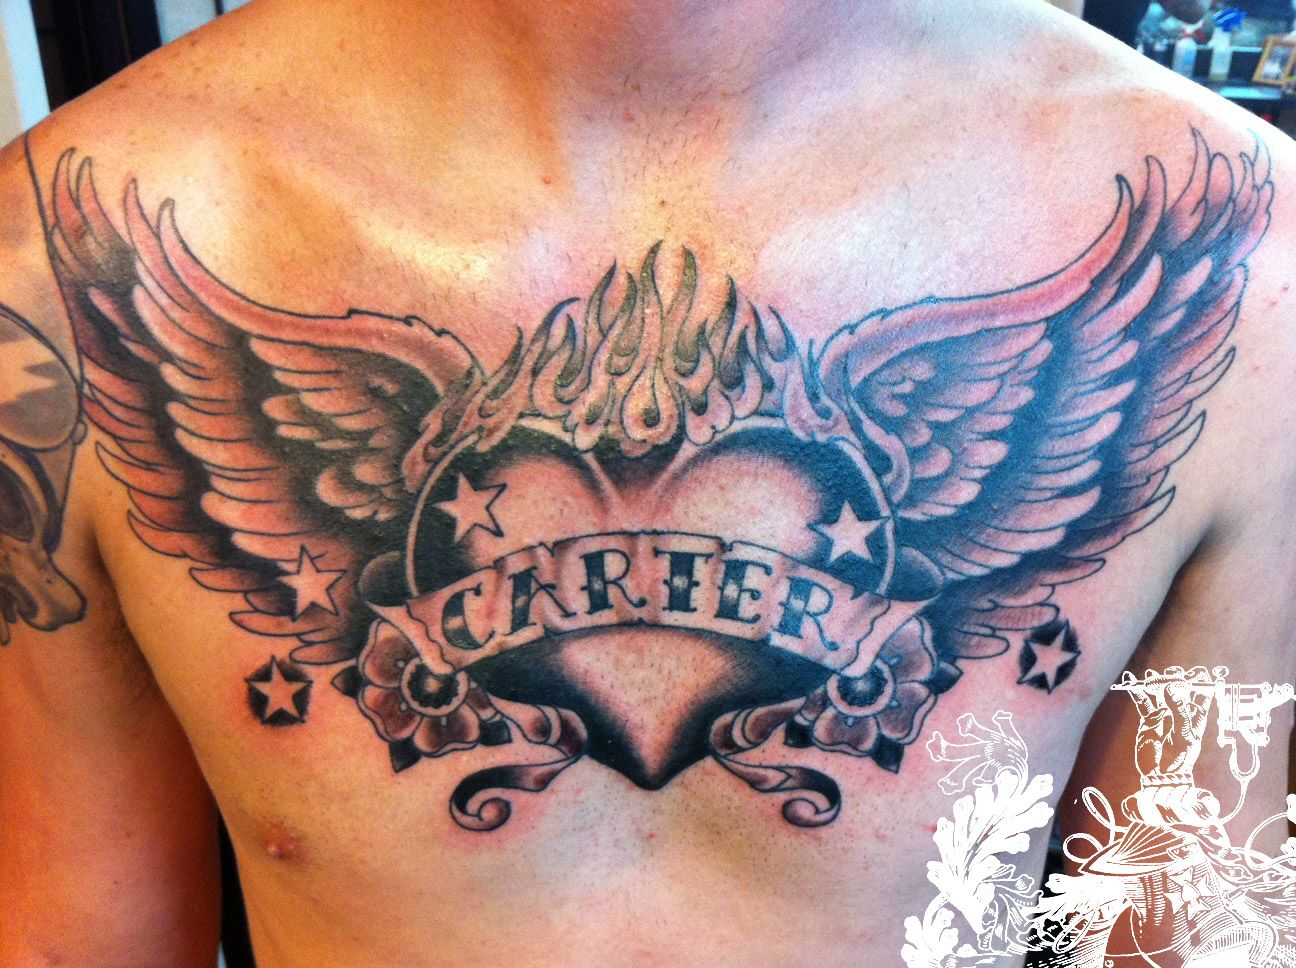 Open Heart Chest Tattoo Angel Chest Tattoo Images Designs Newest regarding dimensions 1296 X 968